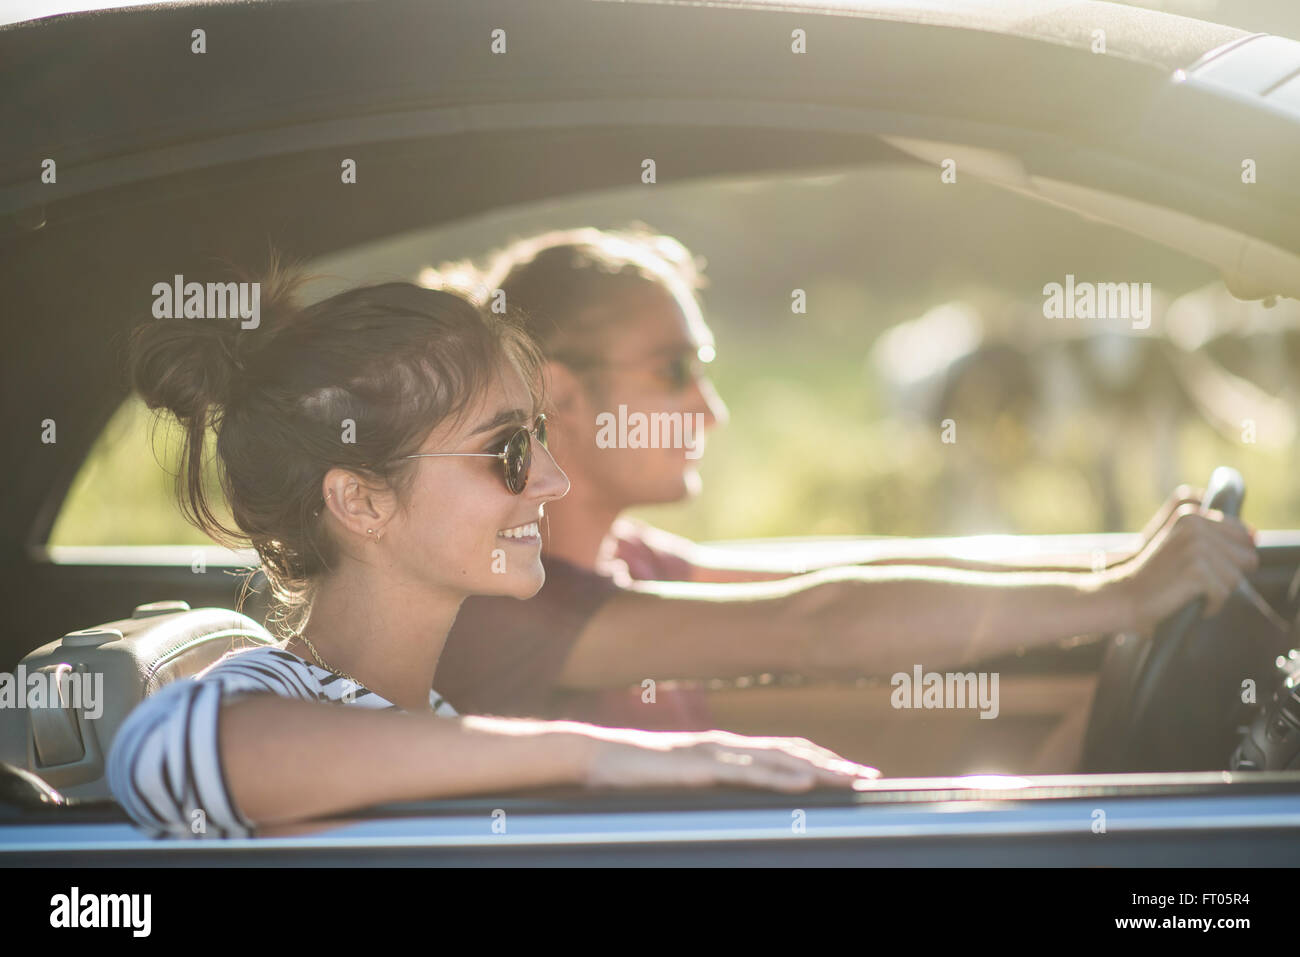 Young couple in his car, happy to drive on a country road, focus on the woman. There are some blurred cows at the - Stock Image